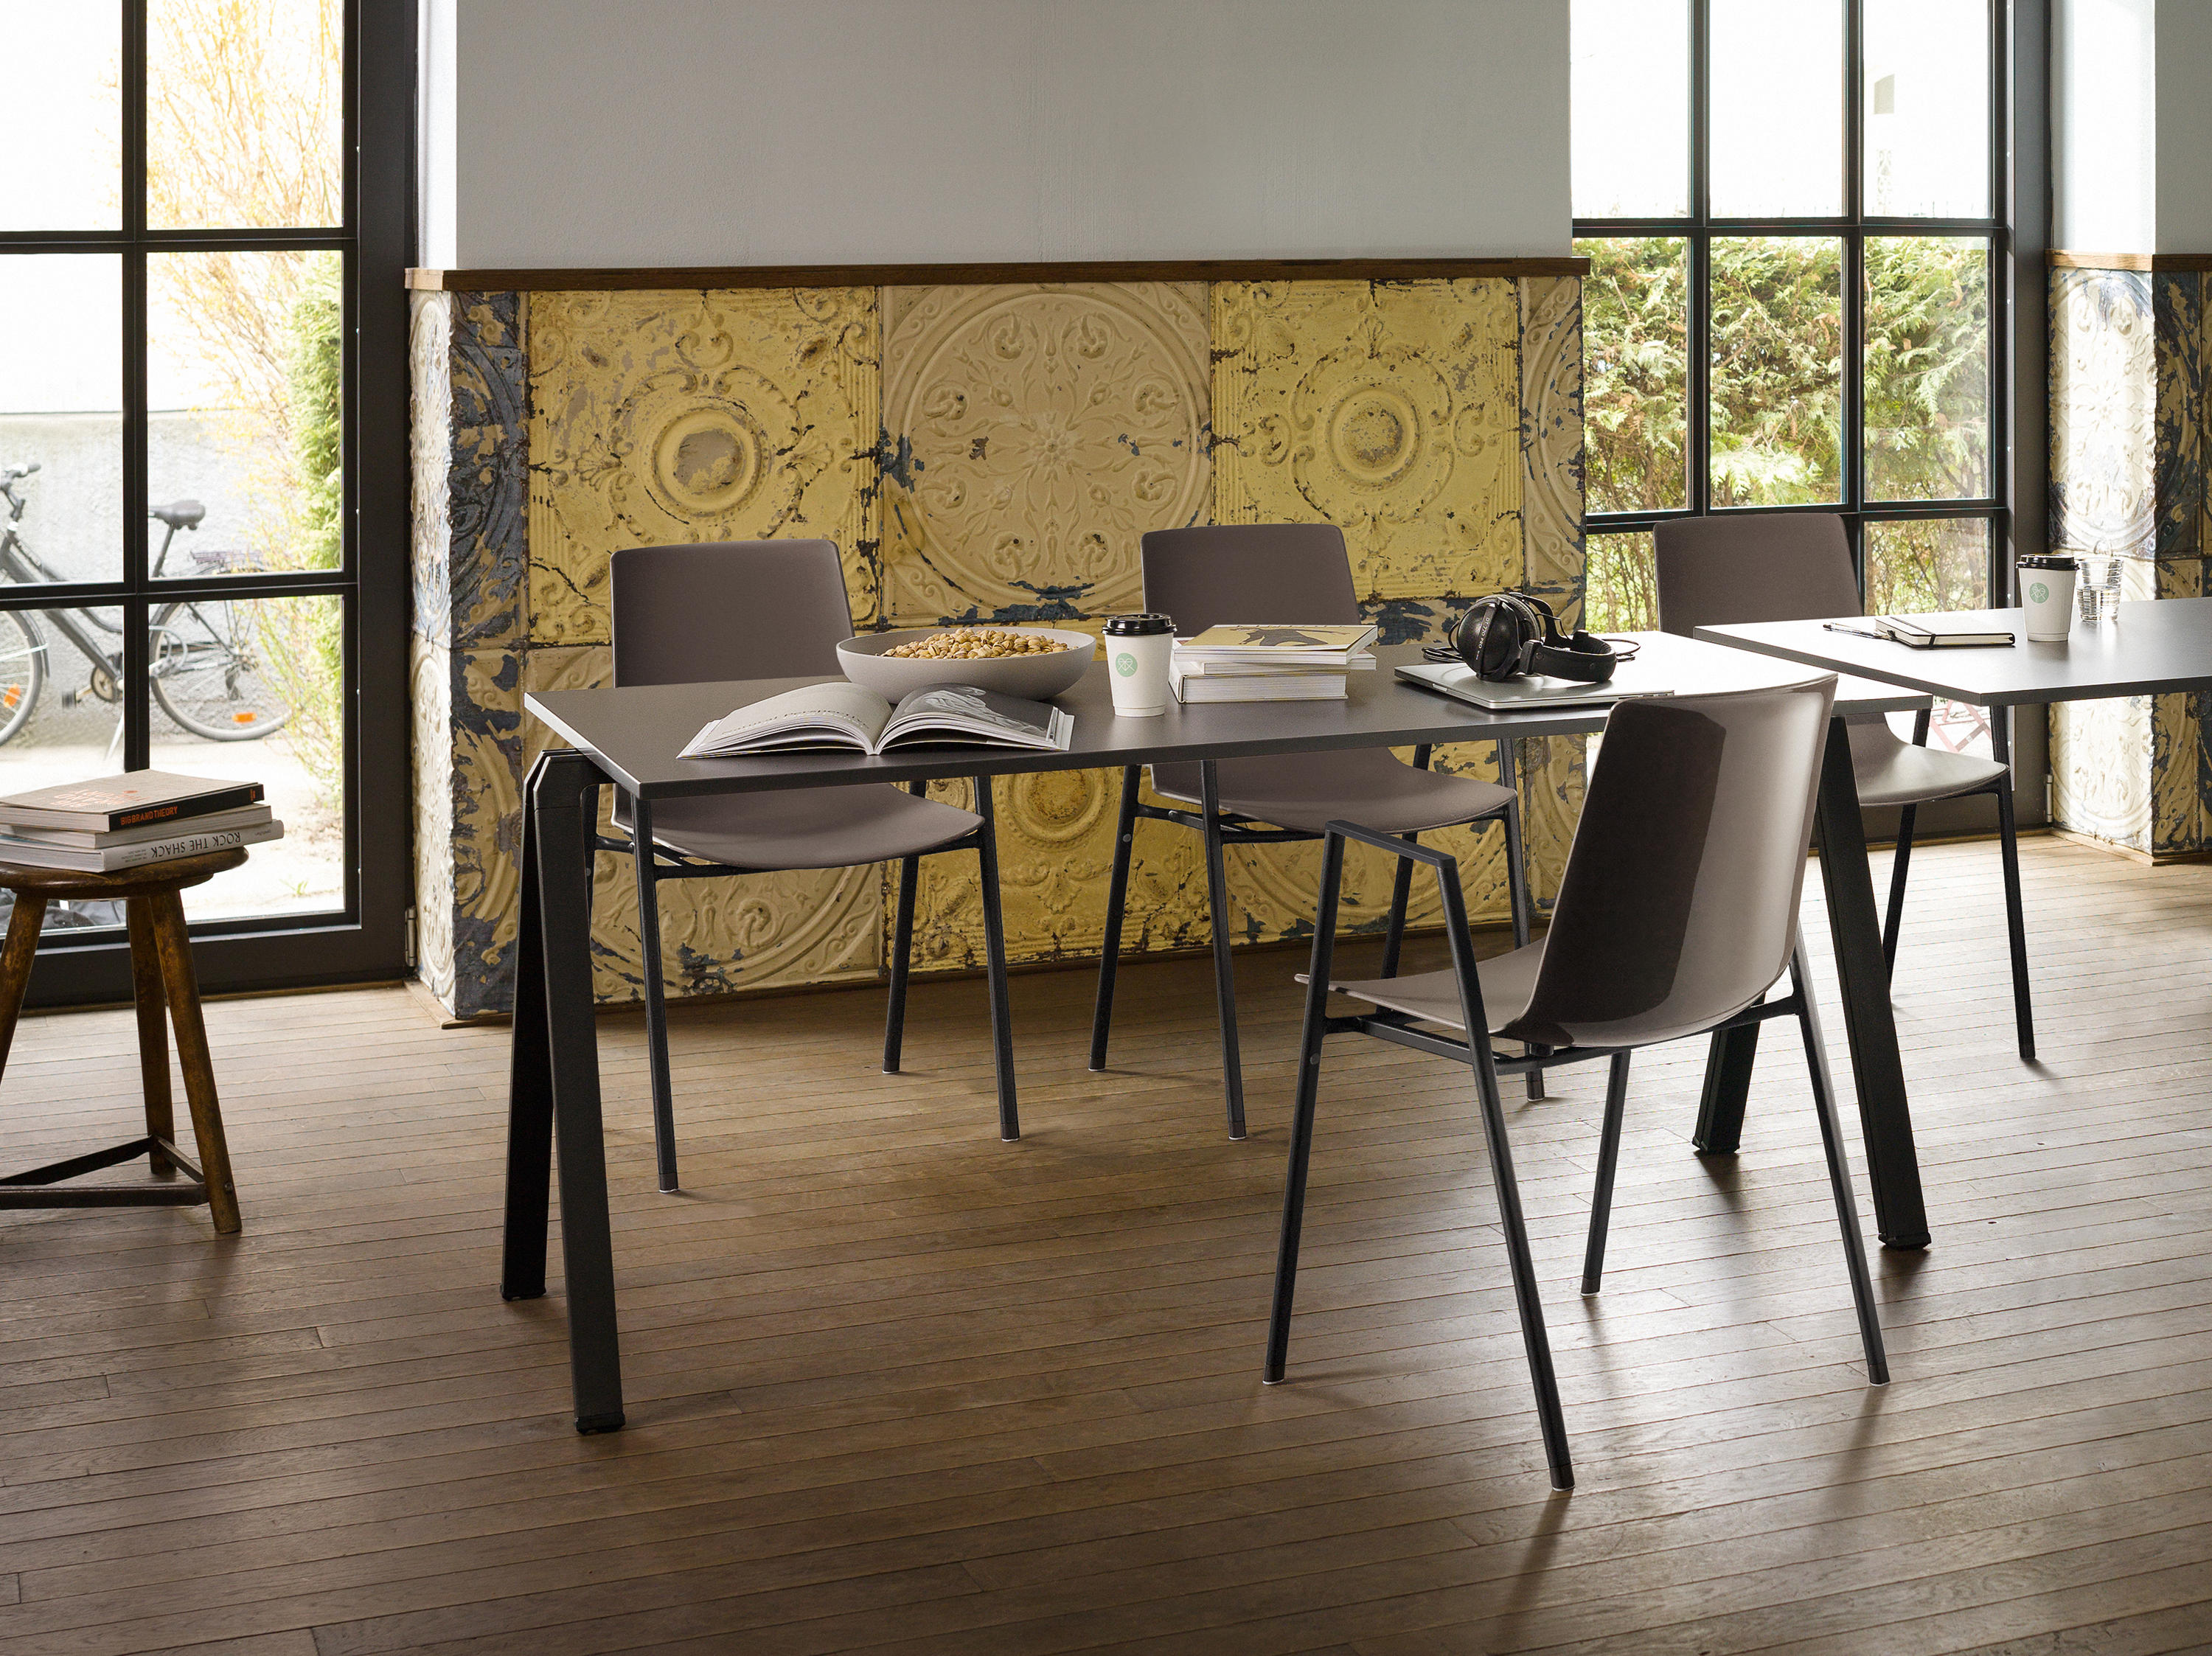 Yuno Stacking Table Contract Tables From Wiesner Hager